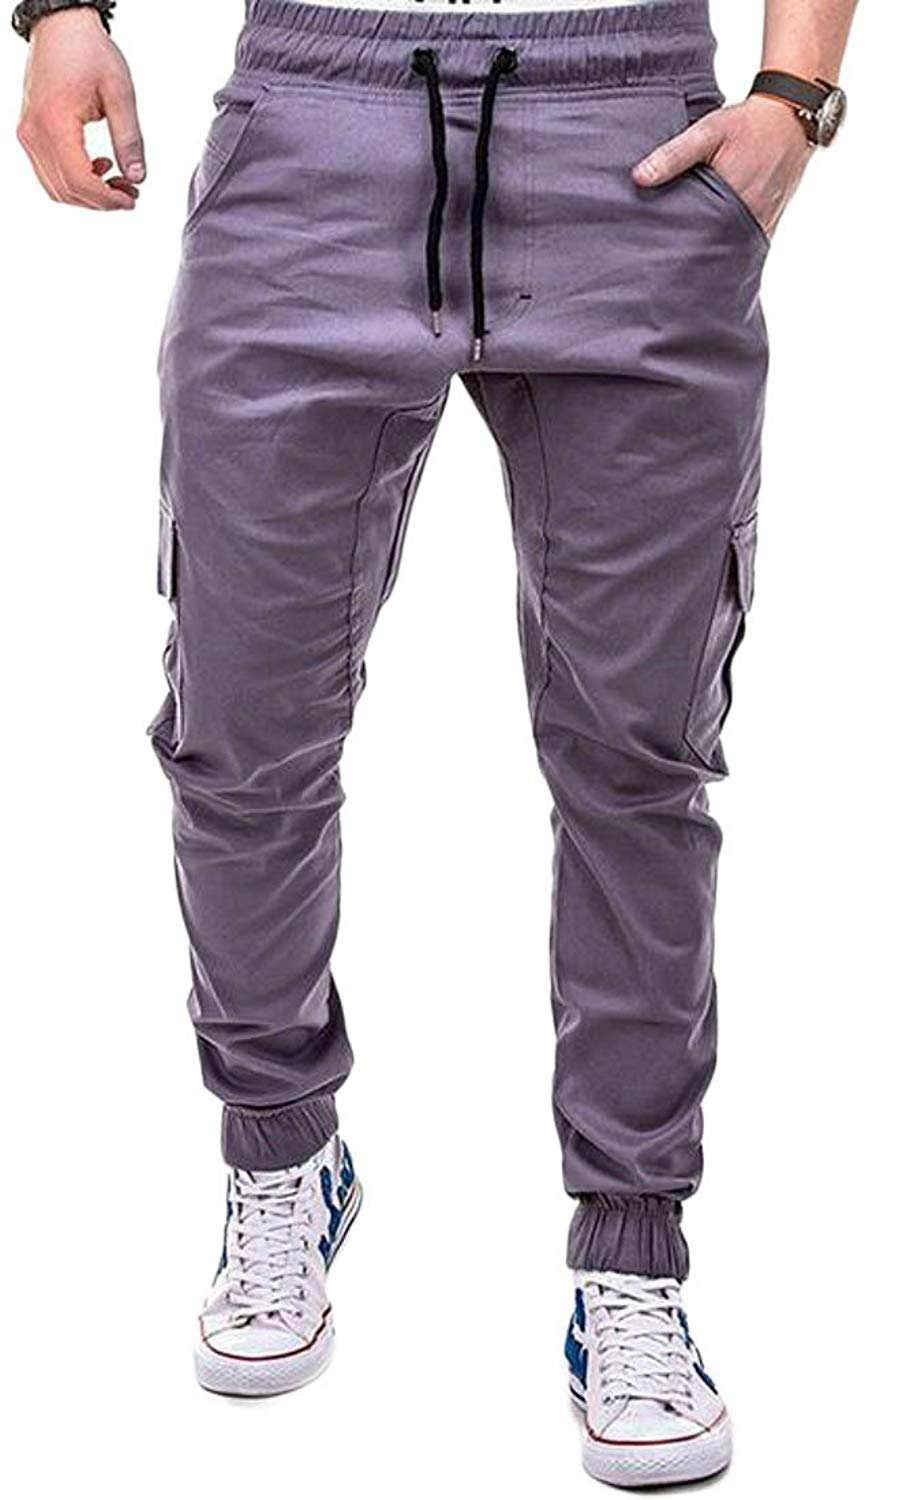 Fensajomon Mens Regular Fit Solid Color Elastic Waist Casual Jogger Pants Sweatpants Trousers